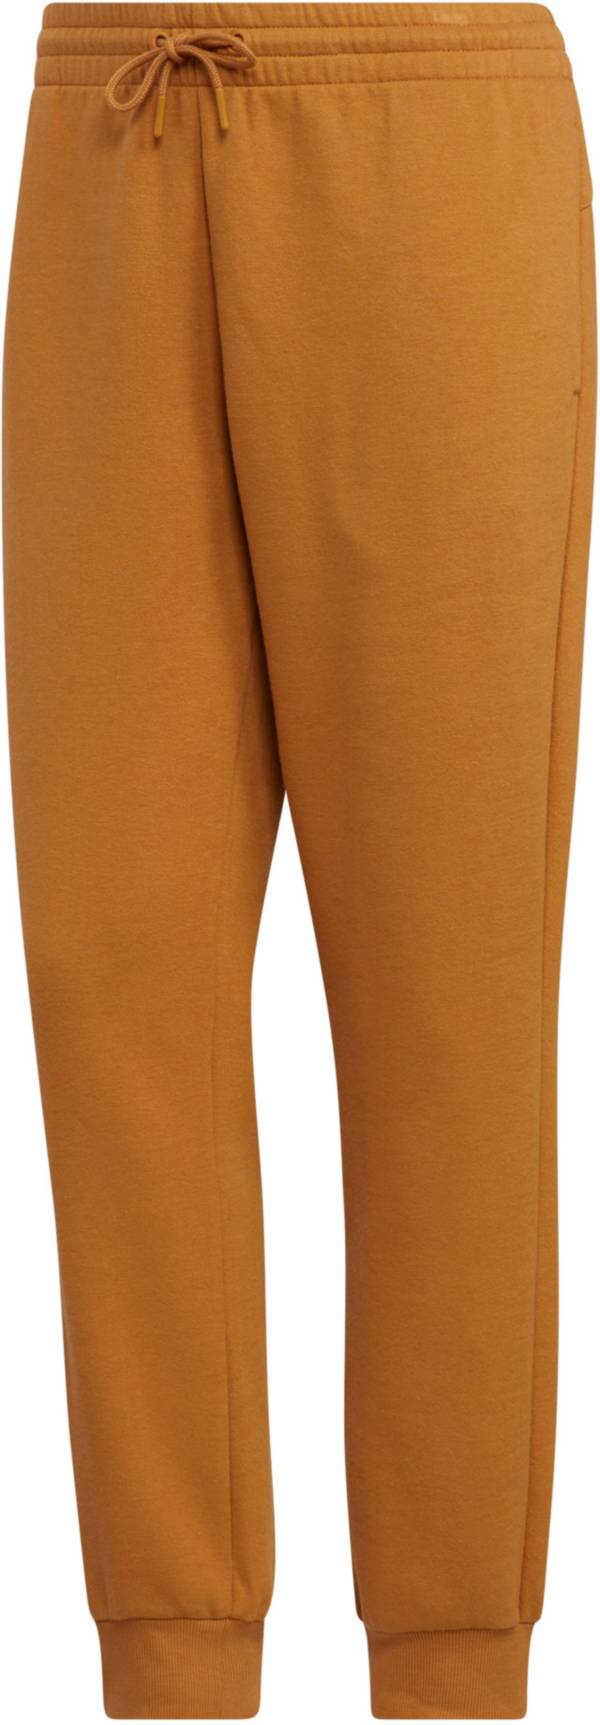 adidas Women's Post Game Jogger Pants product image